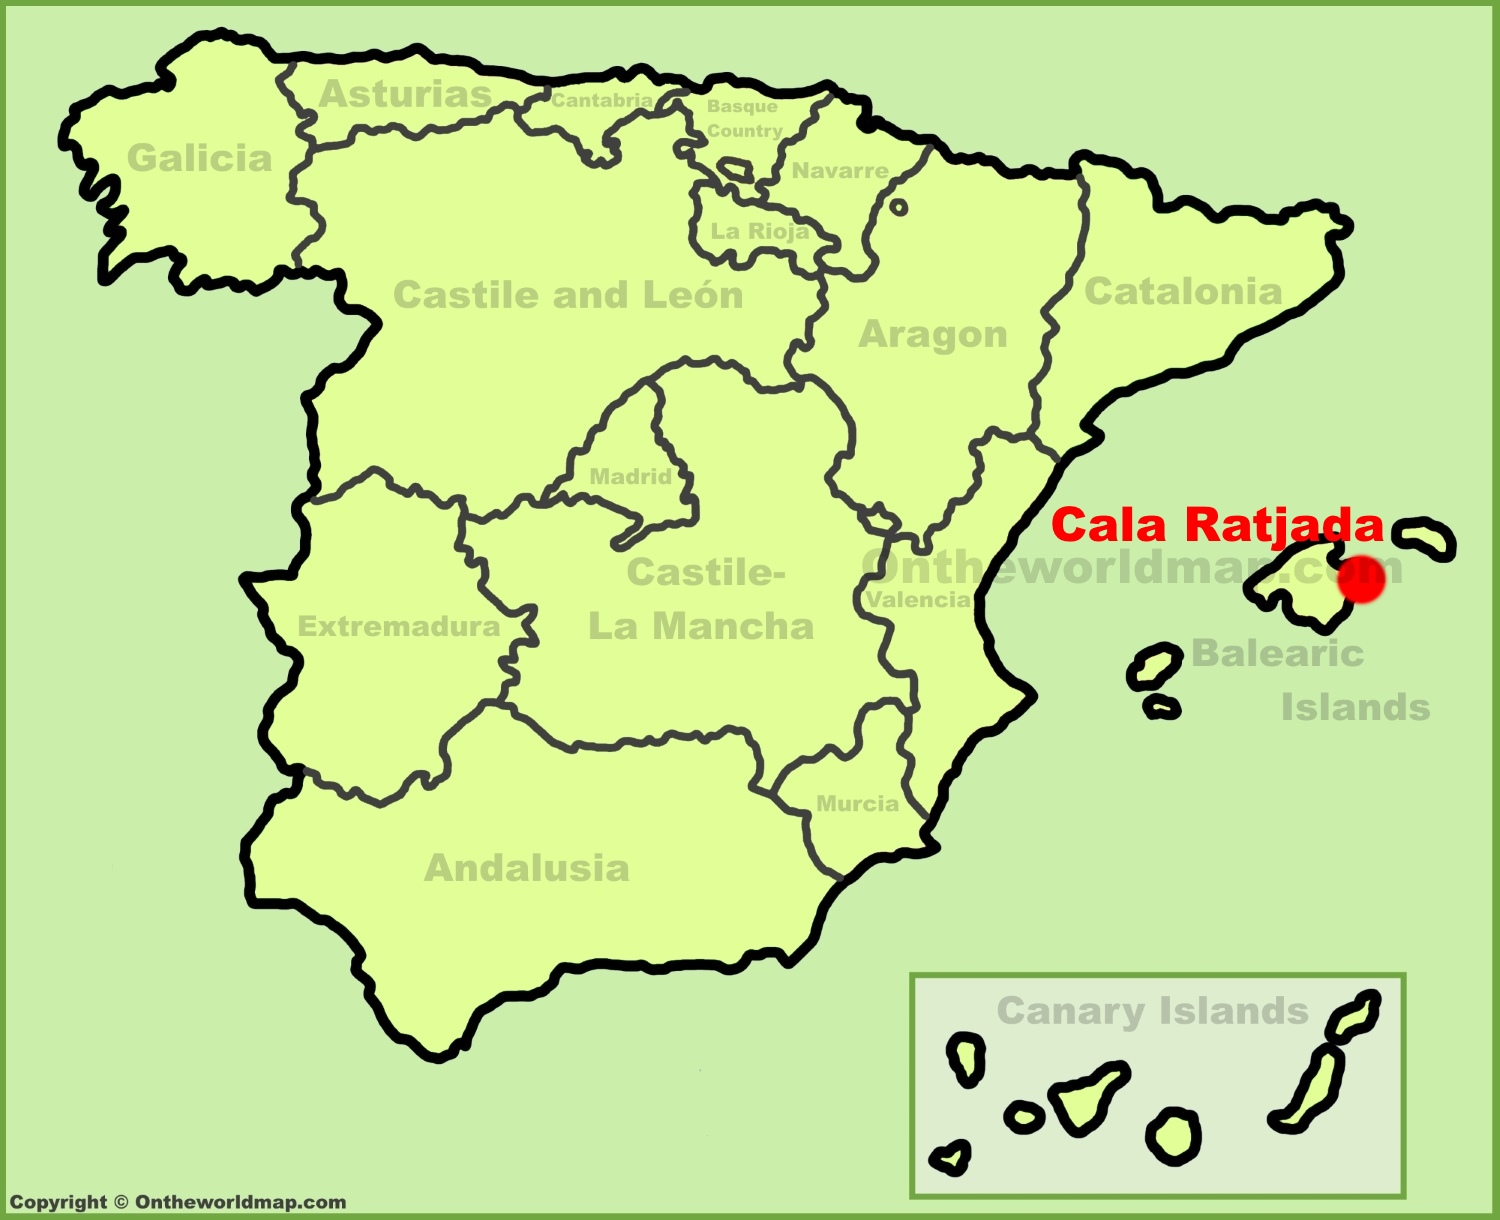 Cala Ratjada location on the Spain map